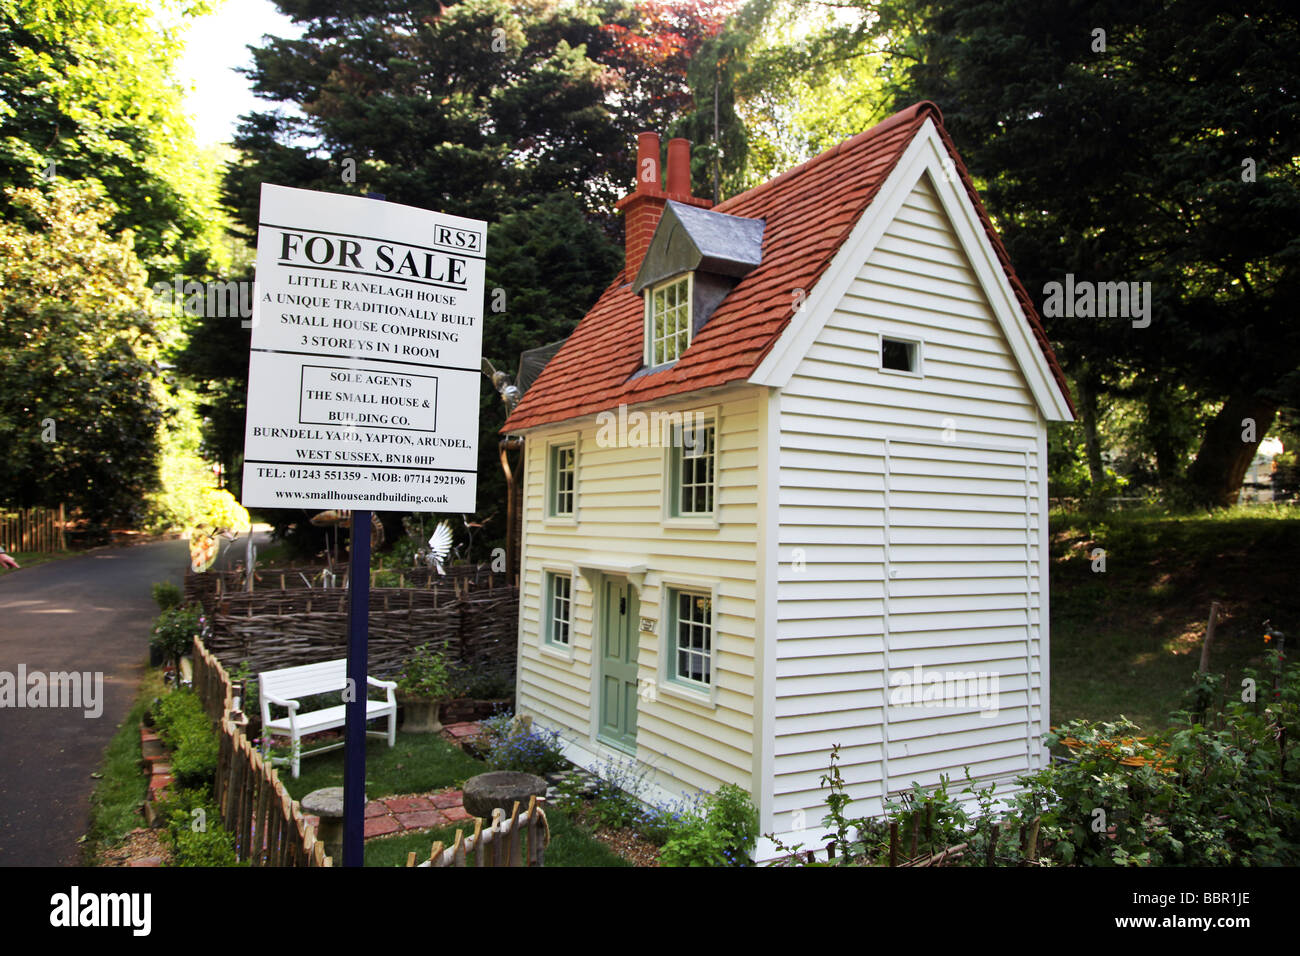 miniature house for sale Chelsea Flower Show 2009 - Stock Image